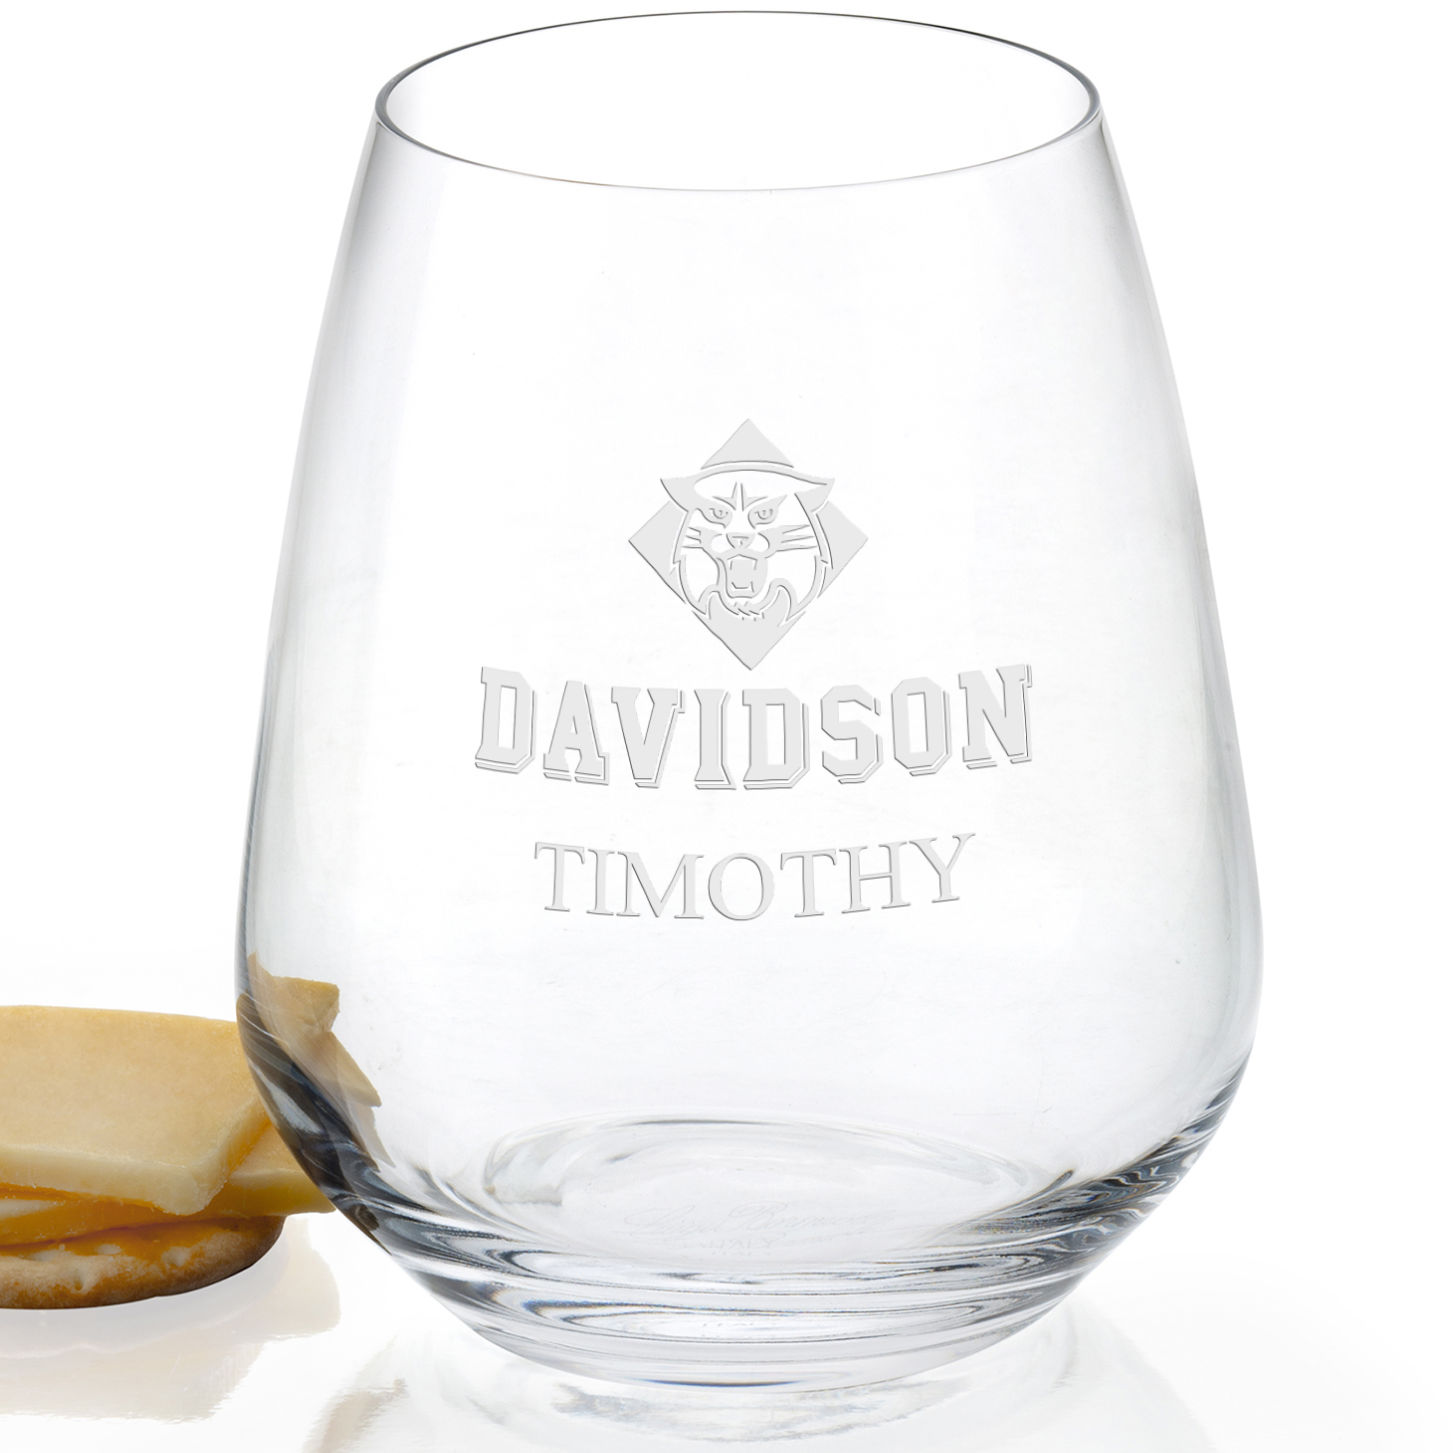 Davidson College Stemless Wine Glasses - Set of 2 - Image 2